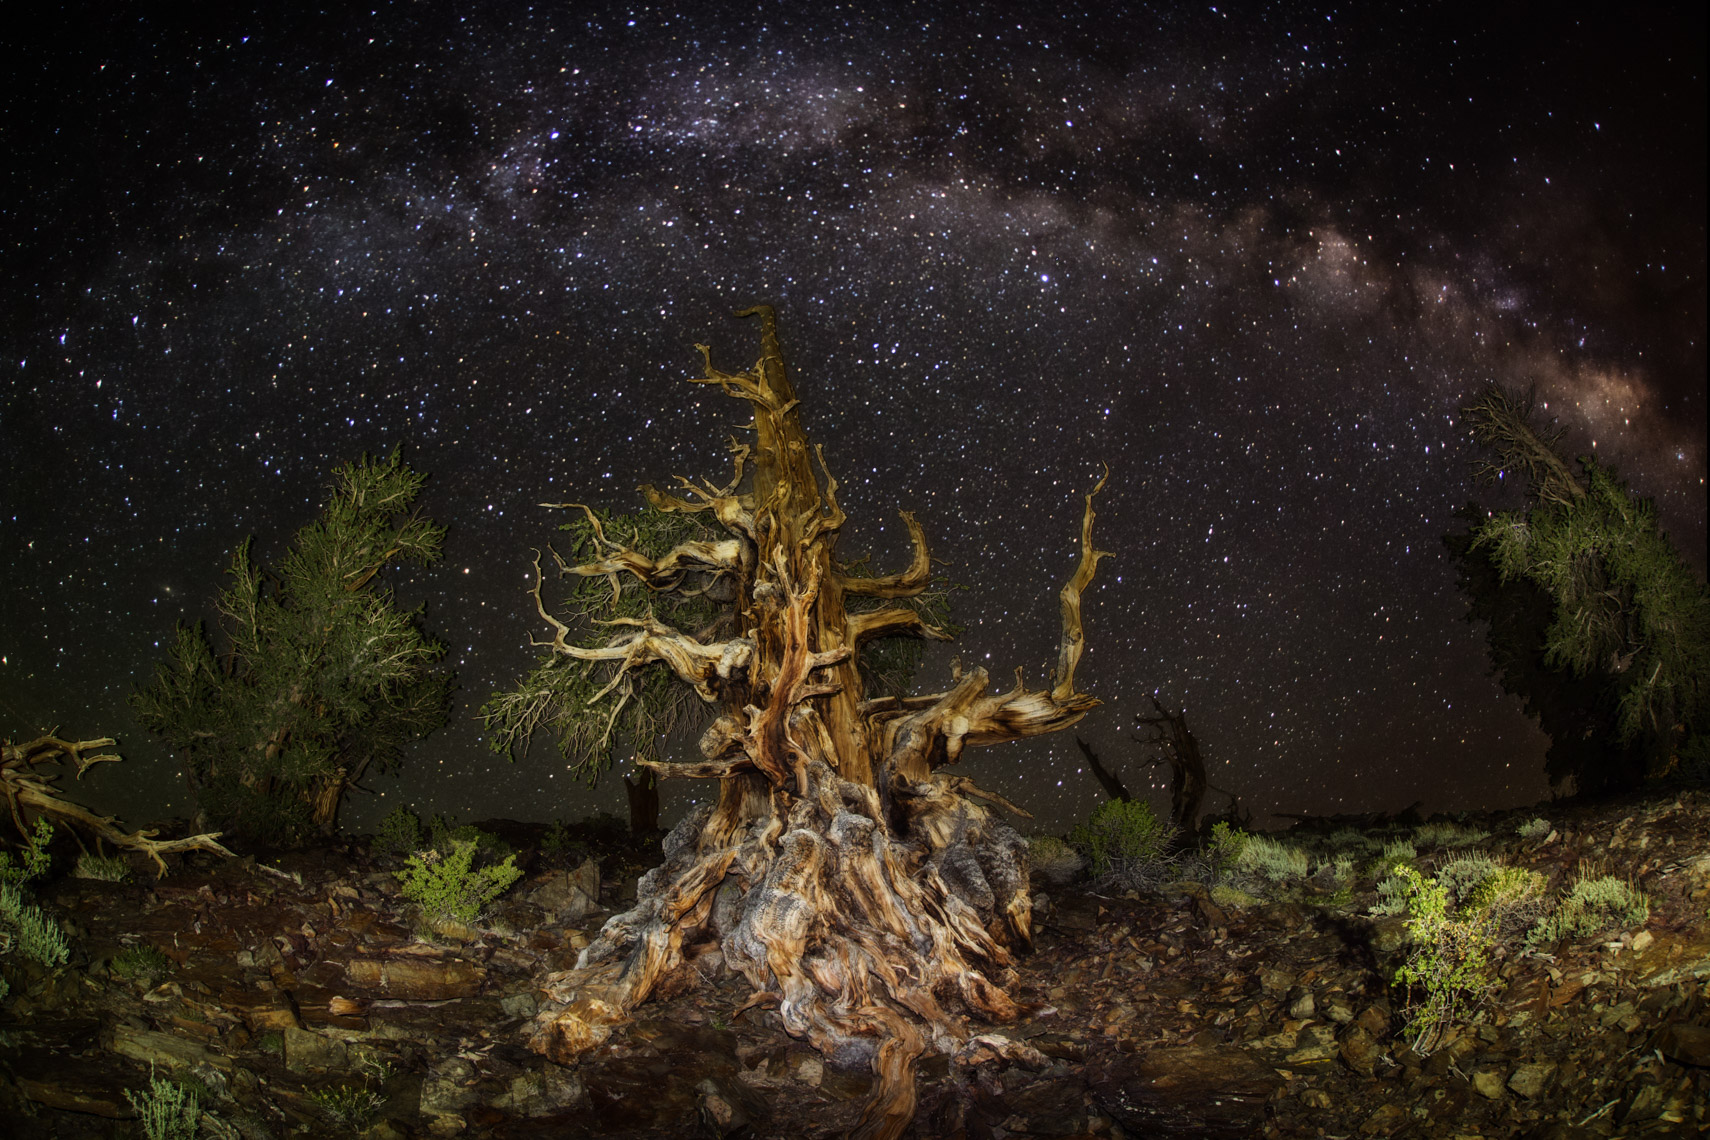 Milk way over bristlecone pine